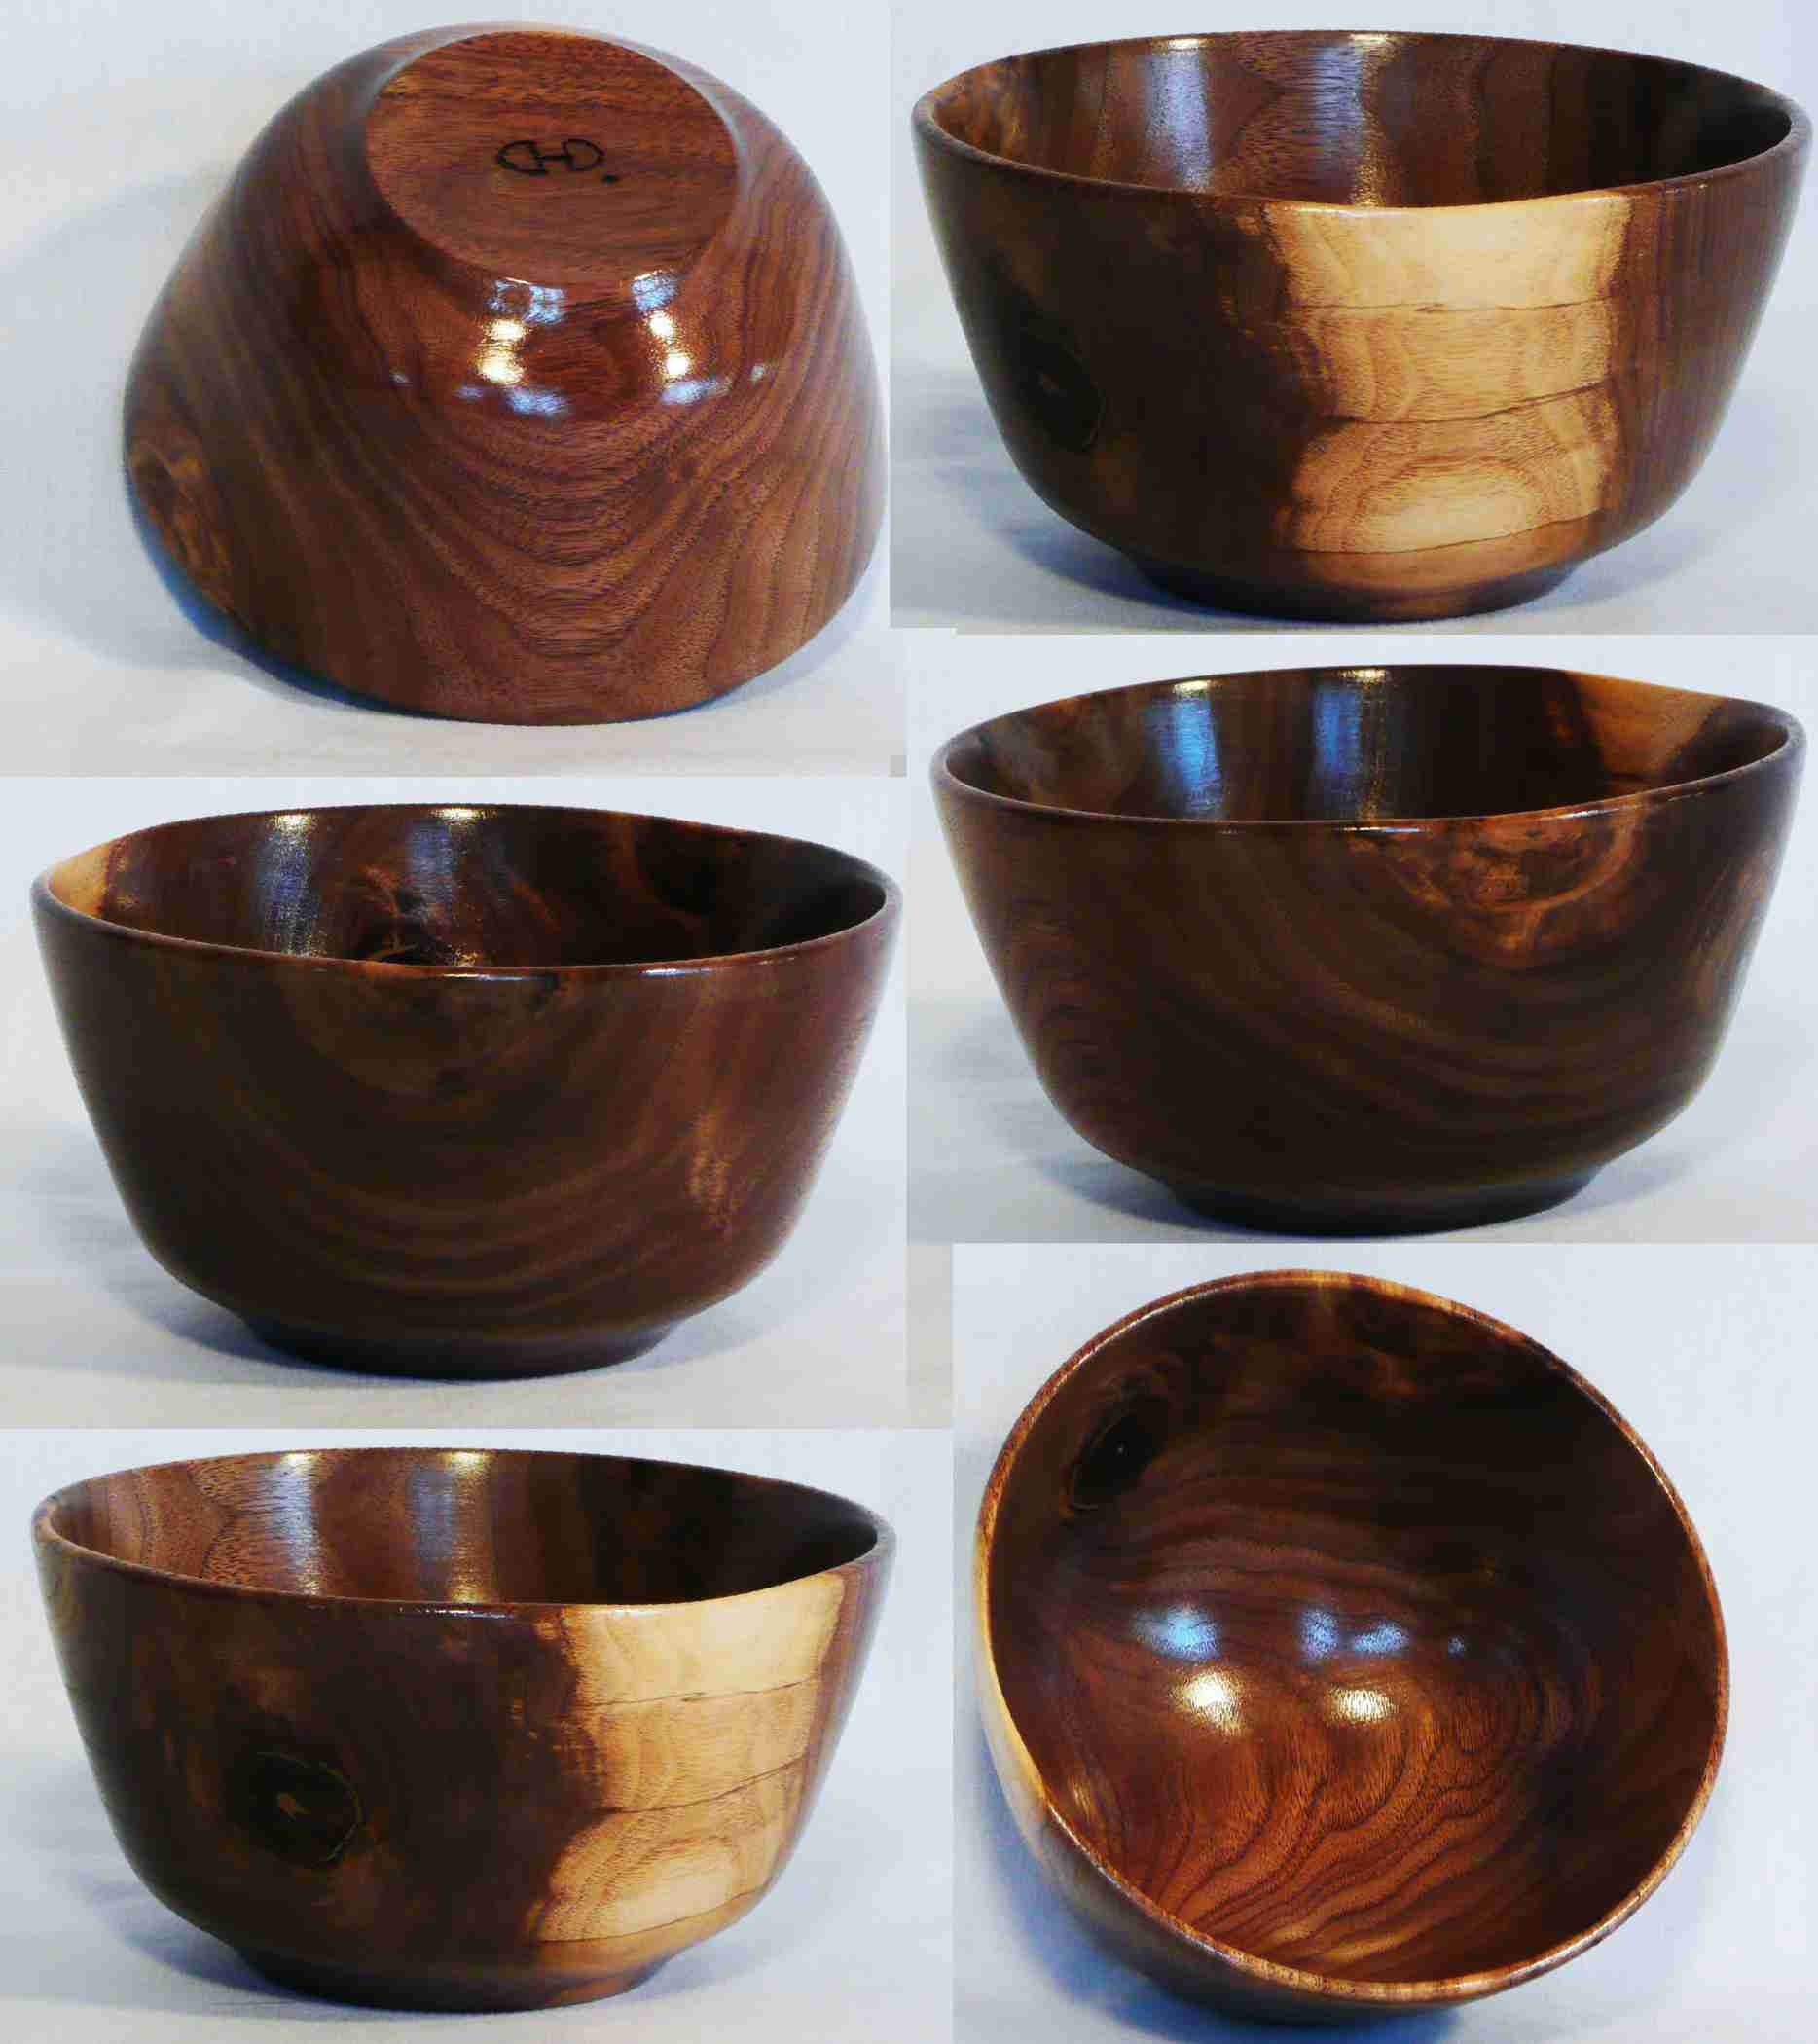 Walnut bowl hand turned by Cynthia D. Haney with decorative accent from a knot and sapwood.